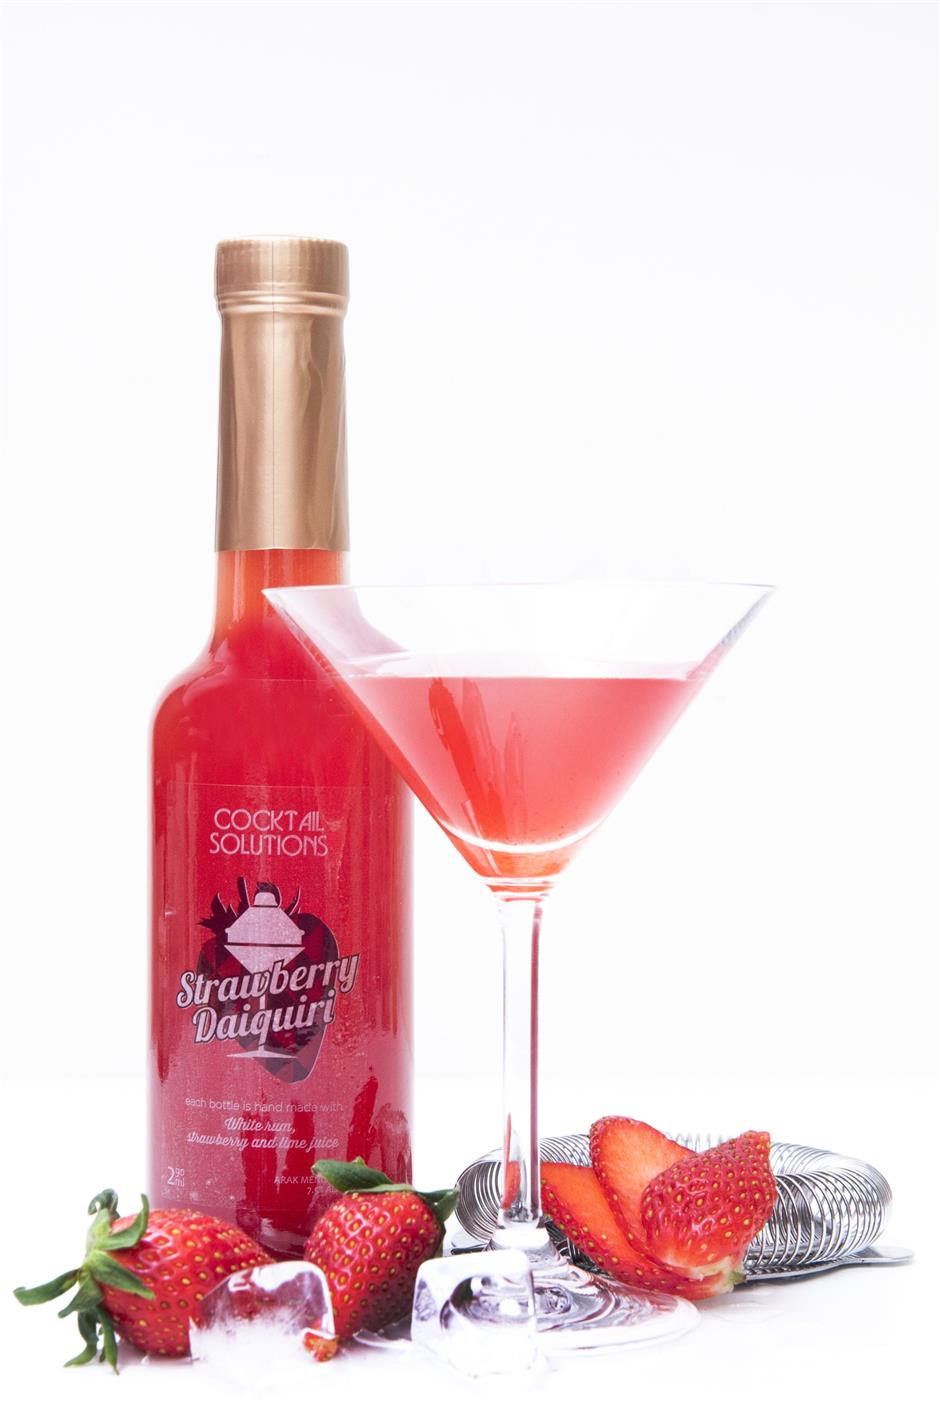 Easy: Fancy a strawberry daquiri? Just pop the bottle, pour, garnish and drink.